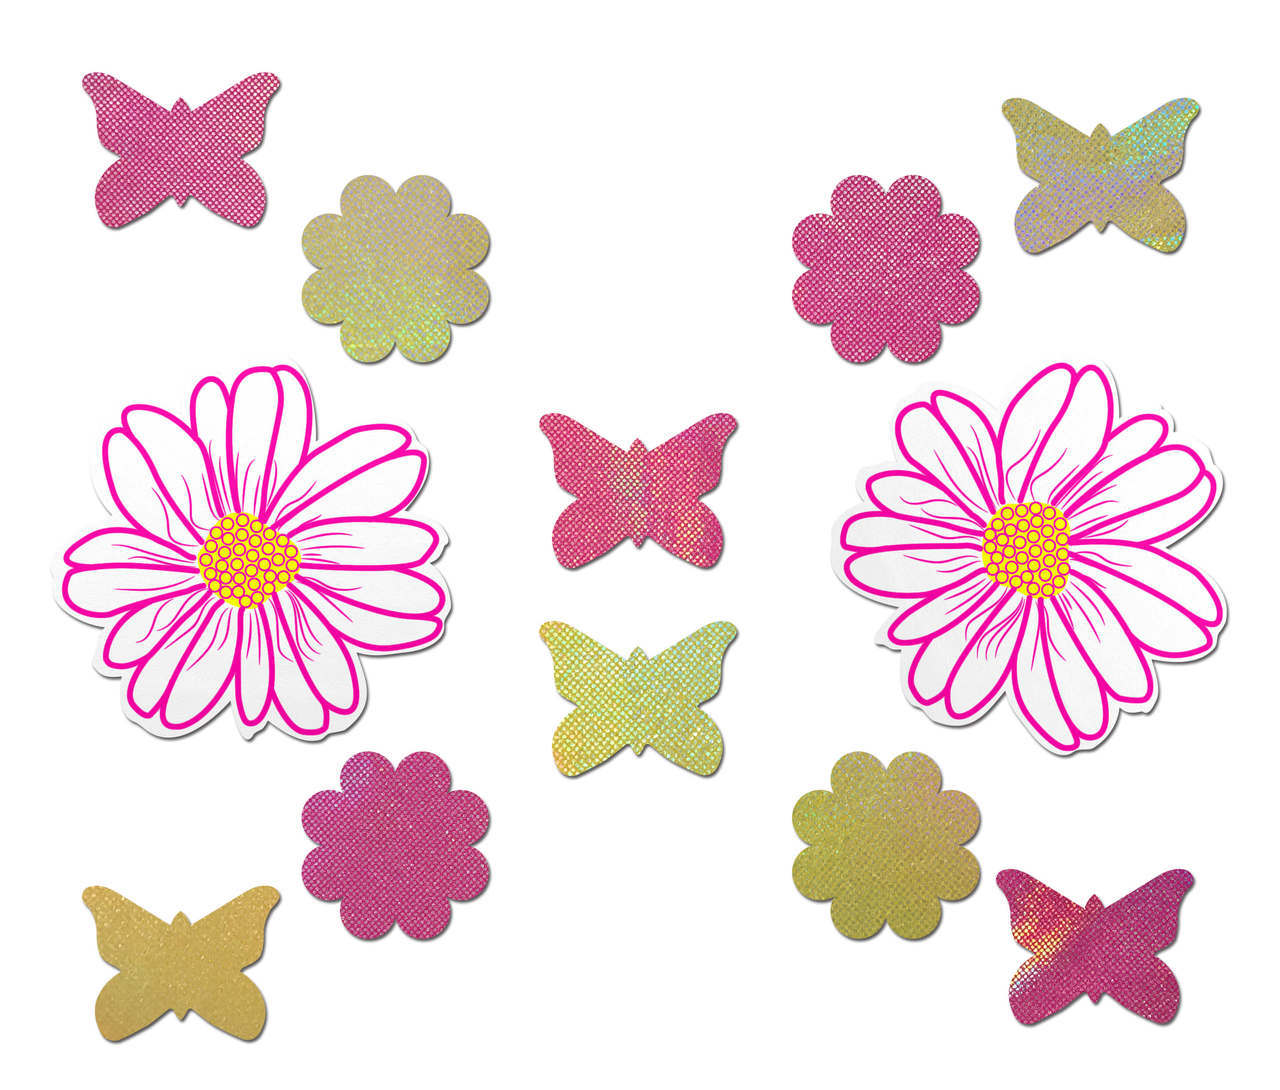 Set: White, Pink and Yellow Wildflower with 2 Mini Holographic Yellow Daisies, 2 Mini Holographic Pink Dasies, 3 Mini Holographic Yellow Butterflies, and 3 Mini Holographic Pink Butterflies